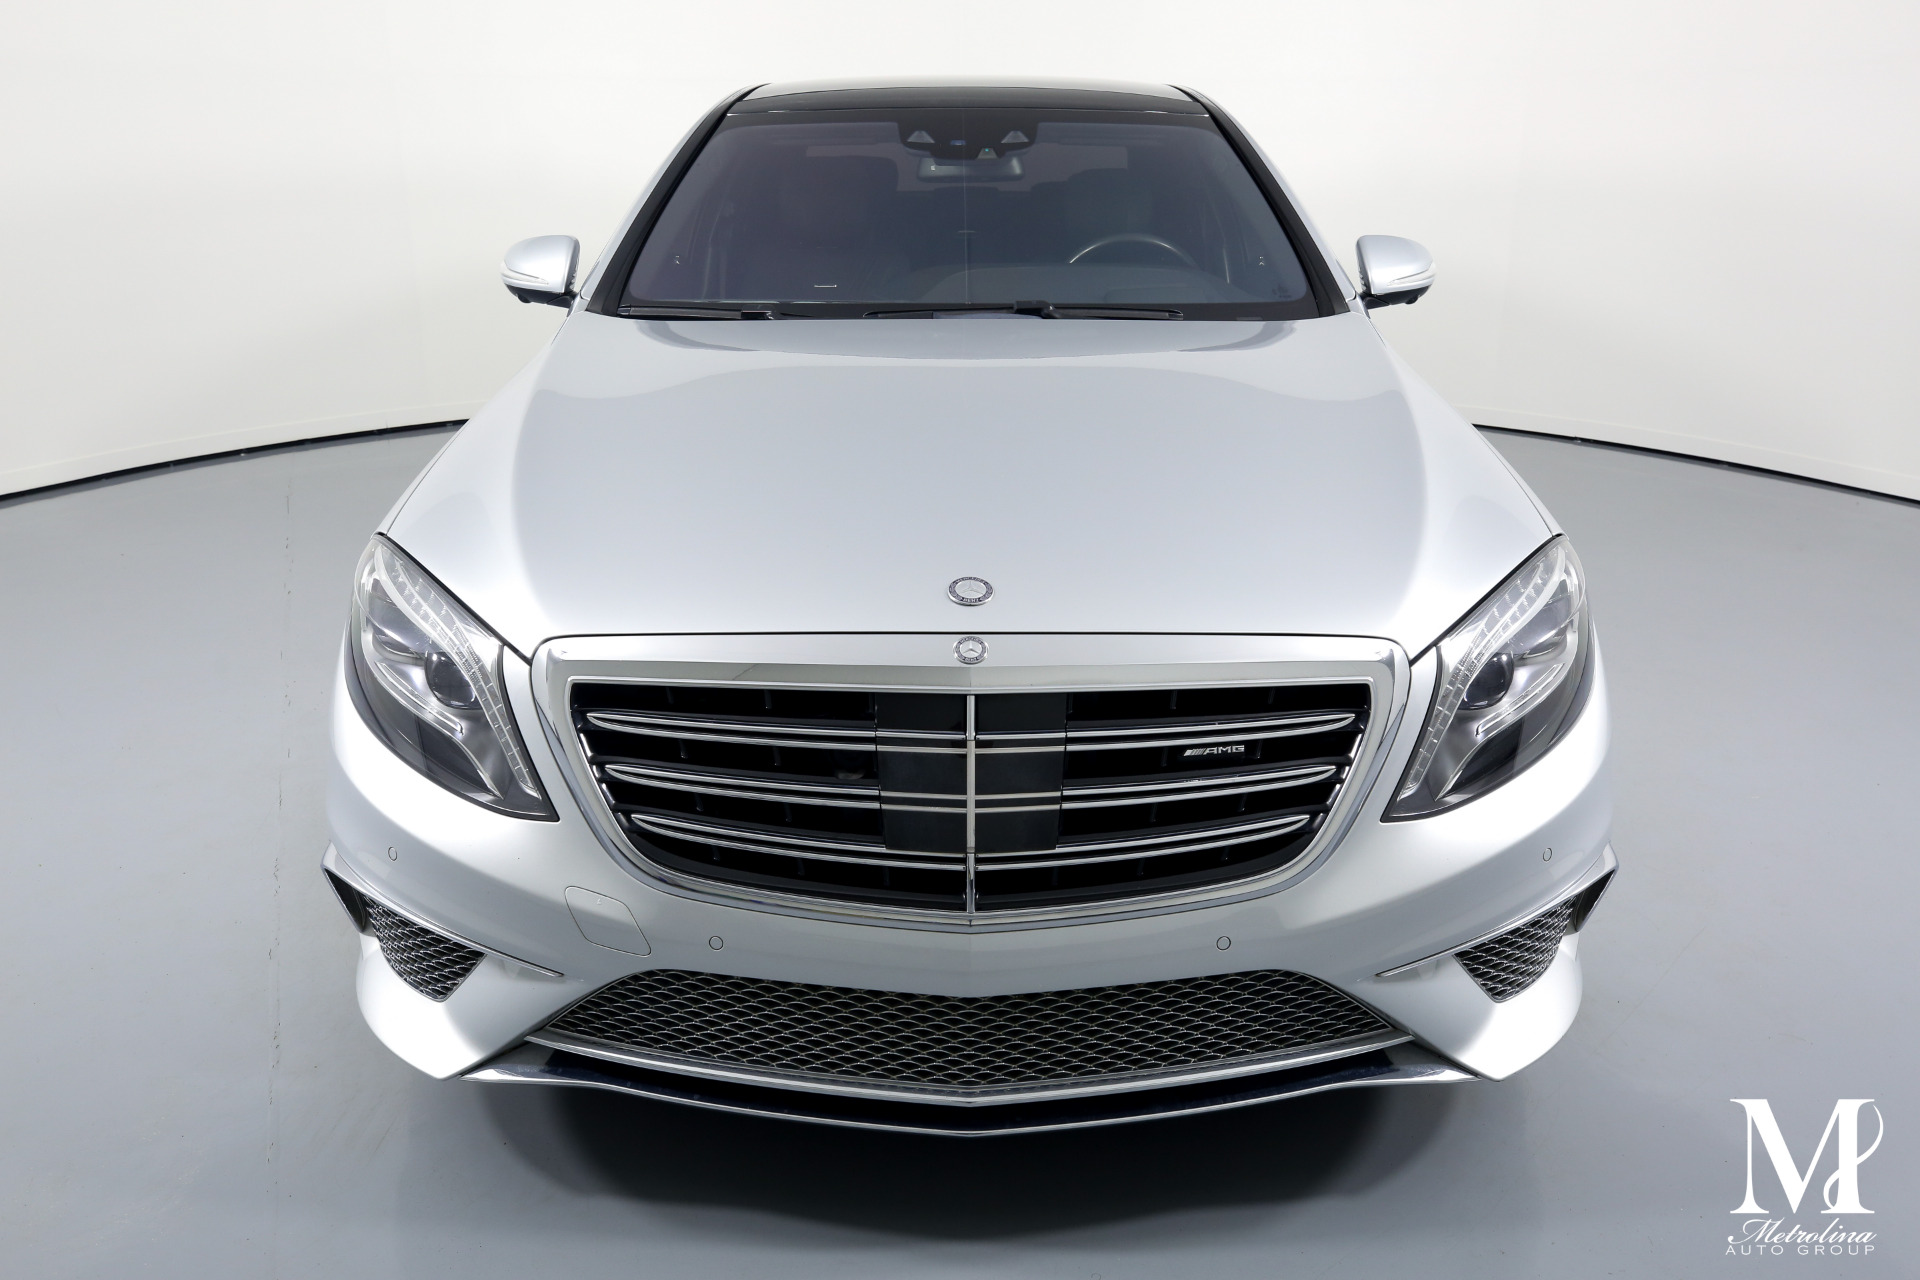 Used 2015 Mercedes-Benz S-Class S 65 AMG for sale $74,996 at Metrolina Auto Group in Charlotte NC 28217 - 3